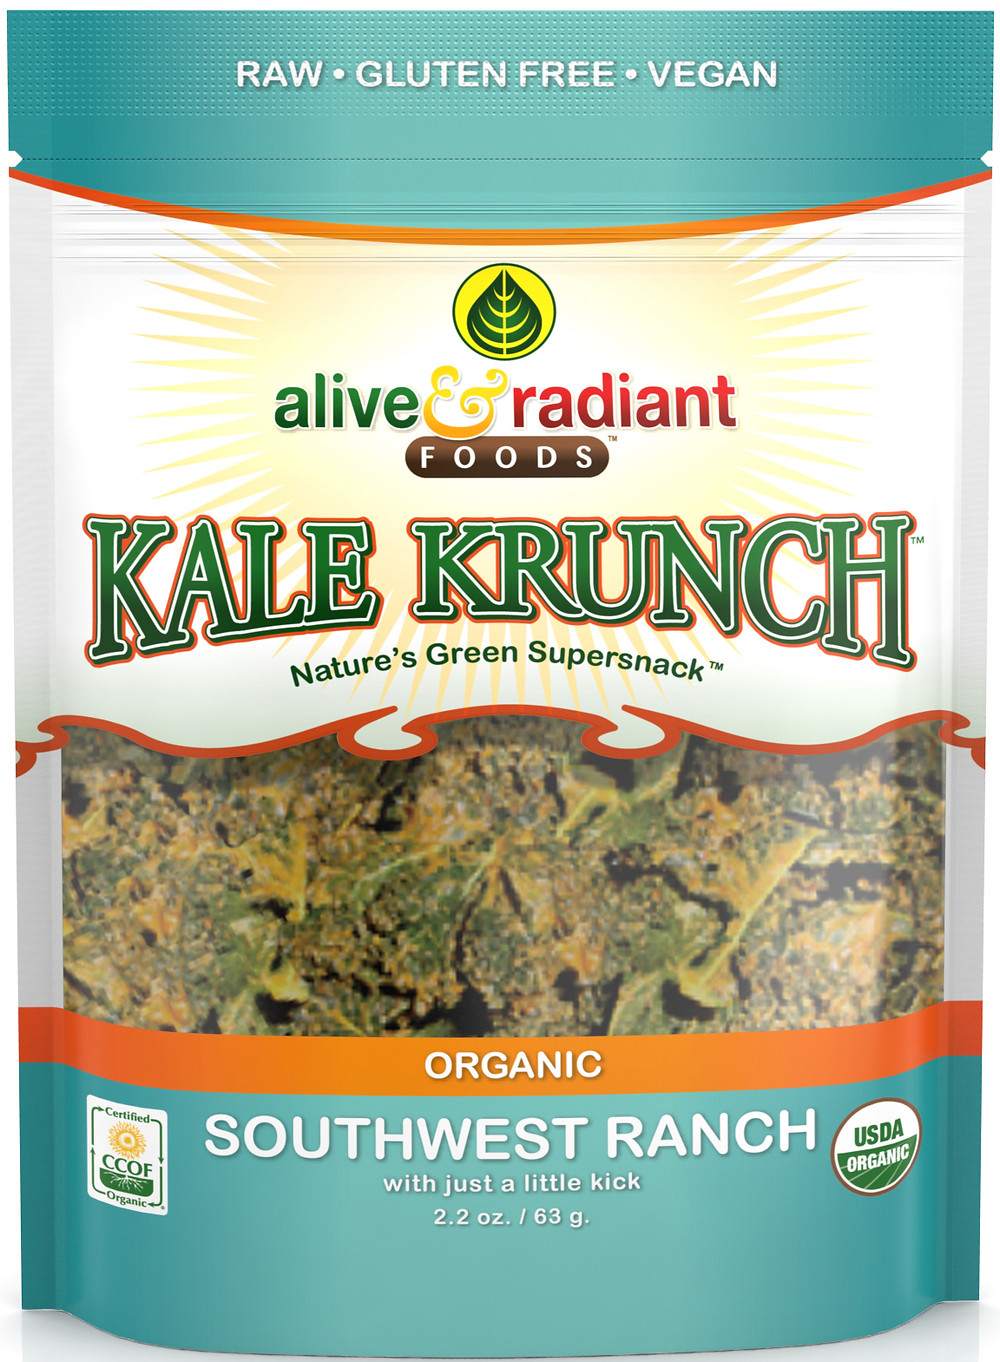 Organic Southwest Ranch Kale Krunch